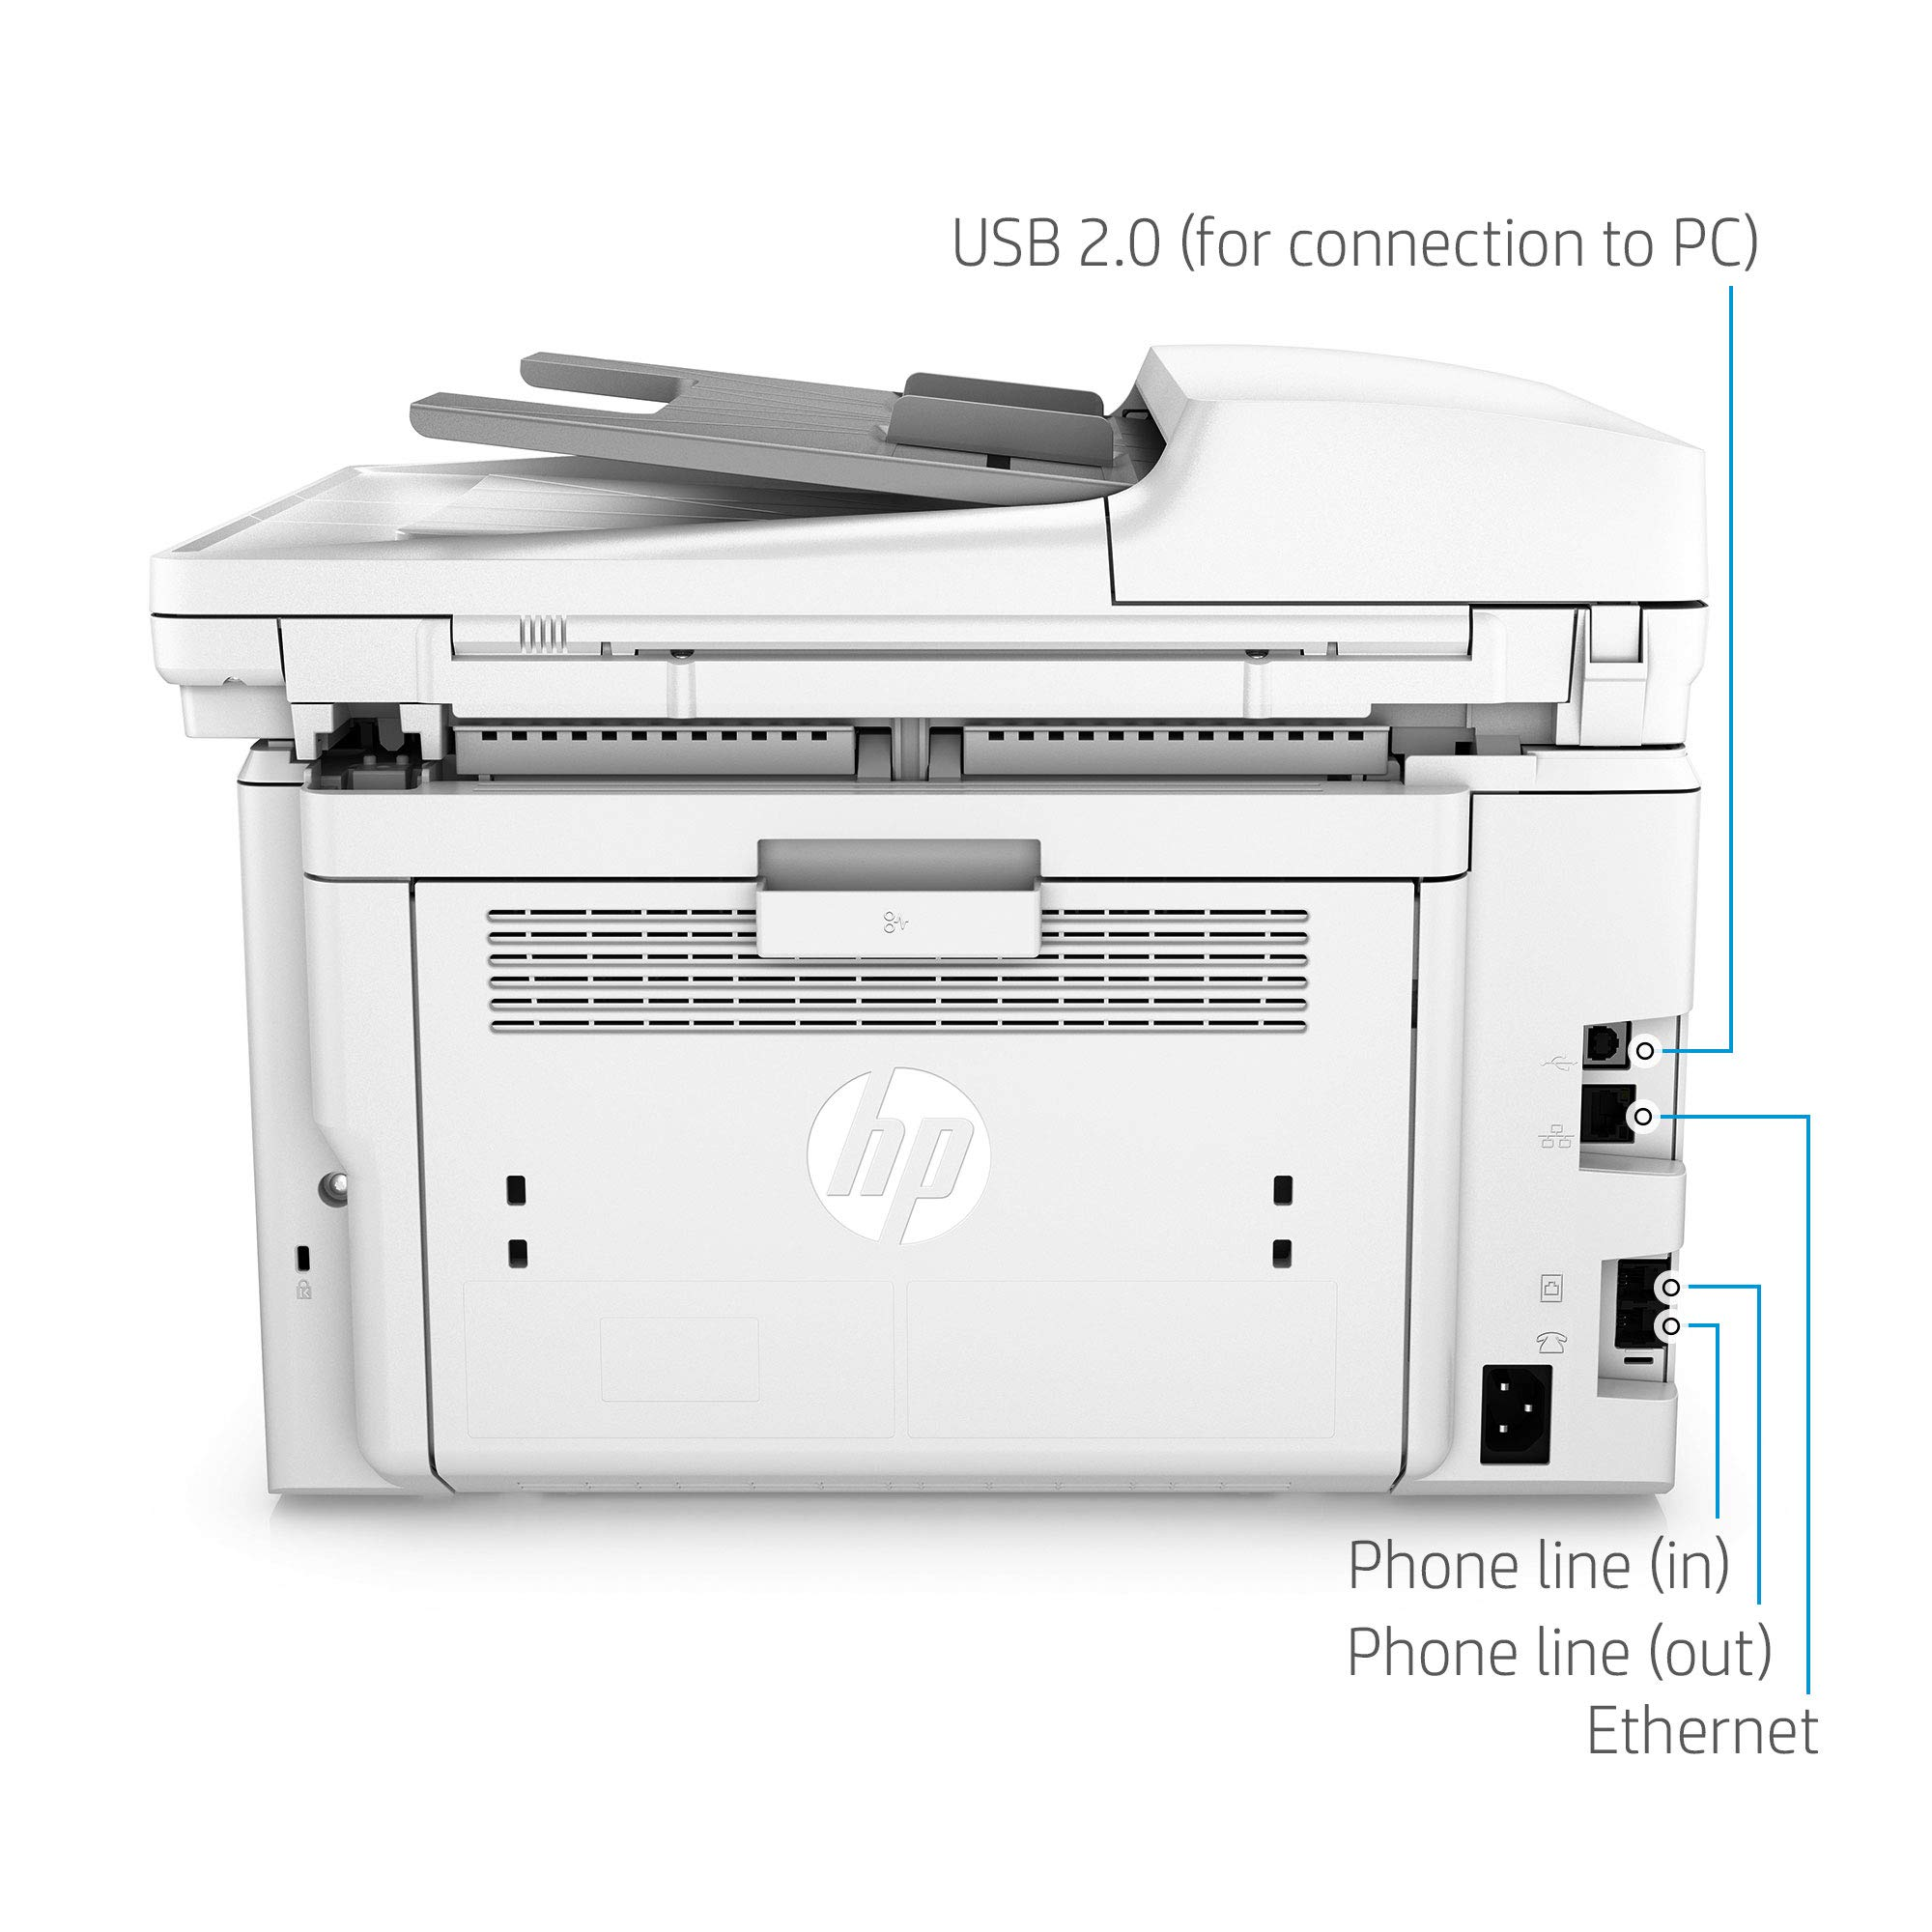 HP Laserjet Pro M148fdw All-in-One Wireless Monochrome Laser Printer with Auto Two-Sided Printing, Mobile Printing, Fax & Built-in Ethernet (4PA42A) by HP (Image #15)